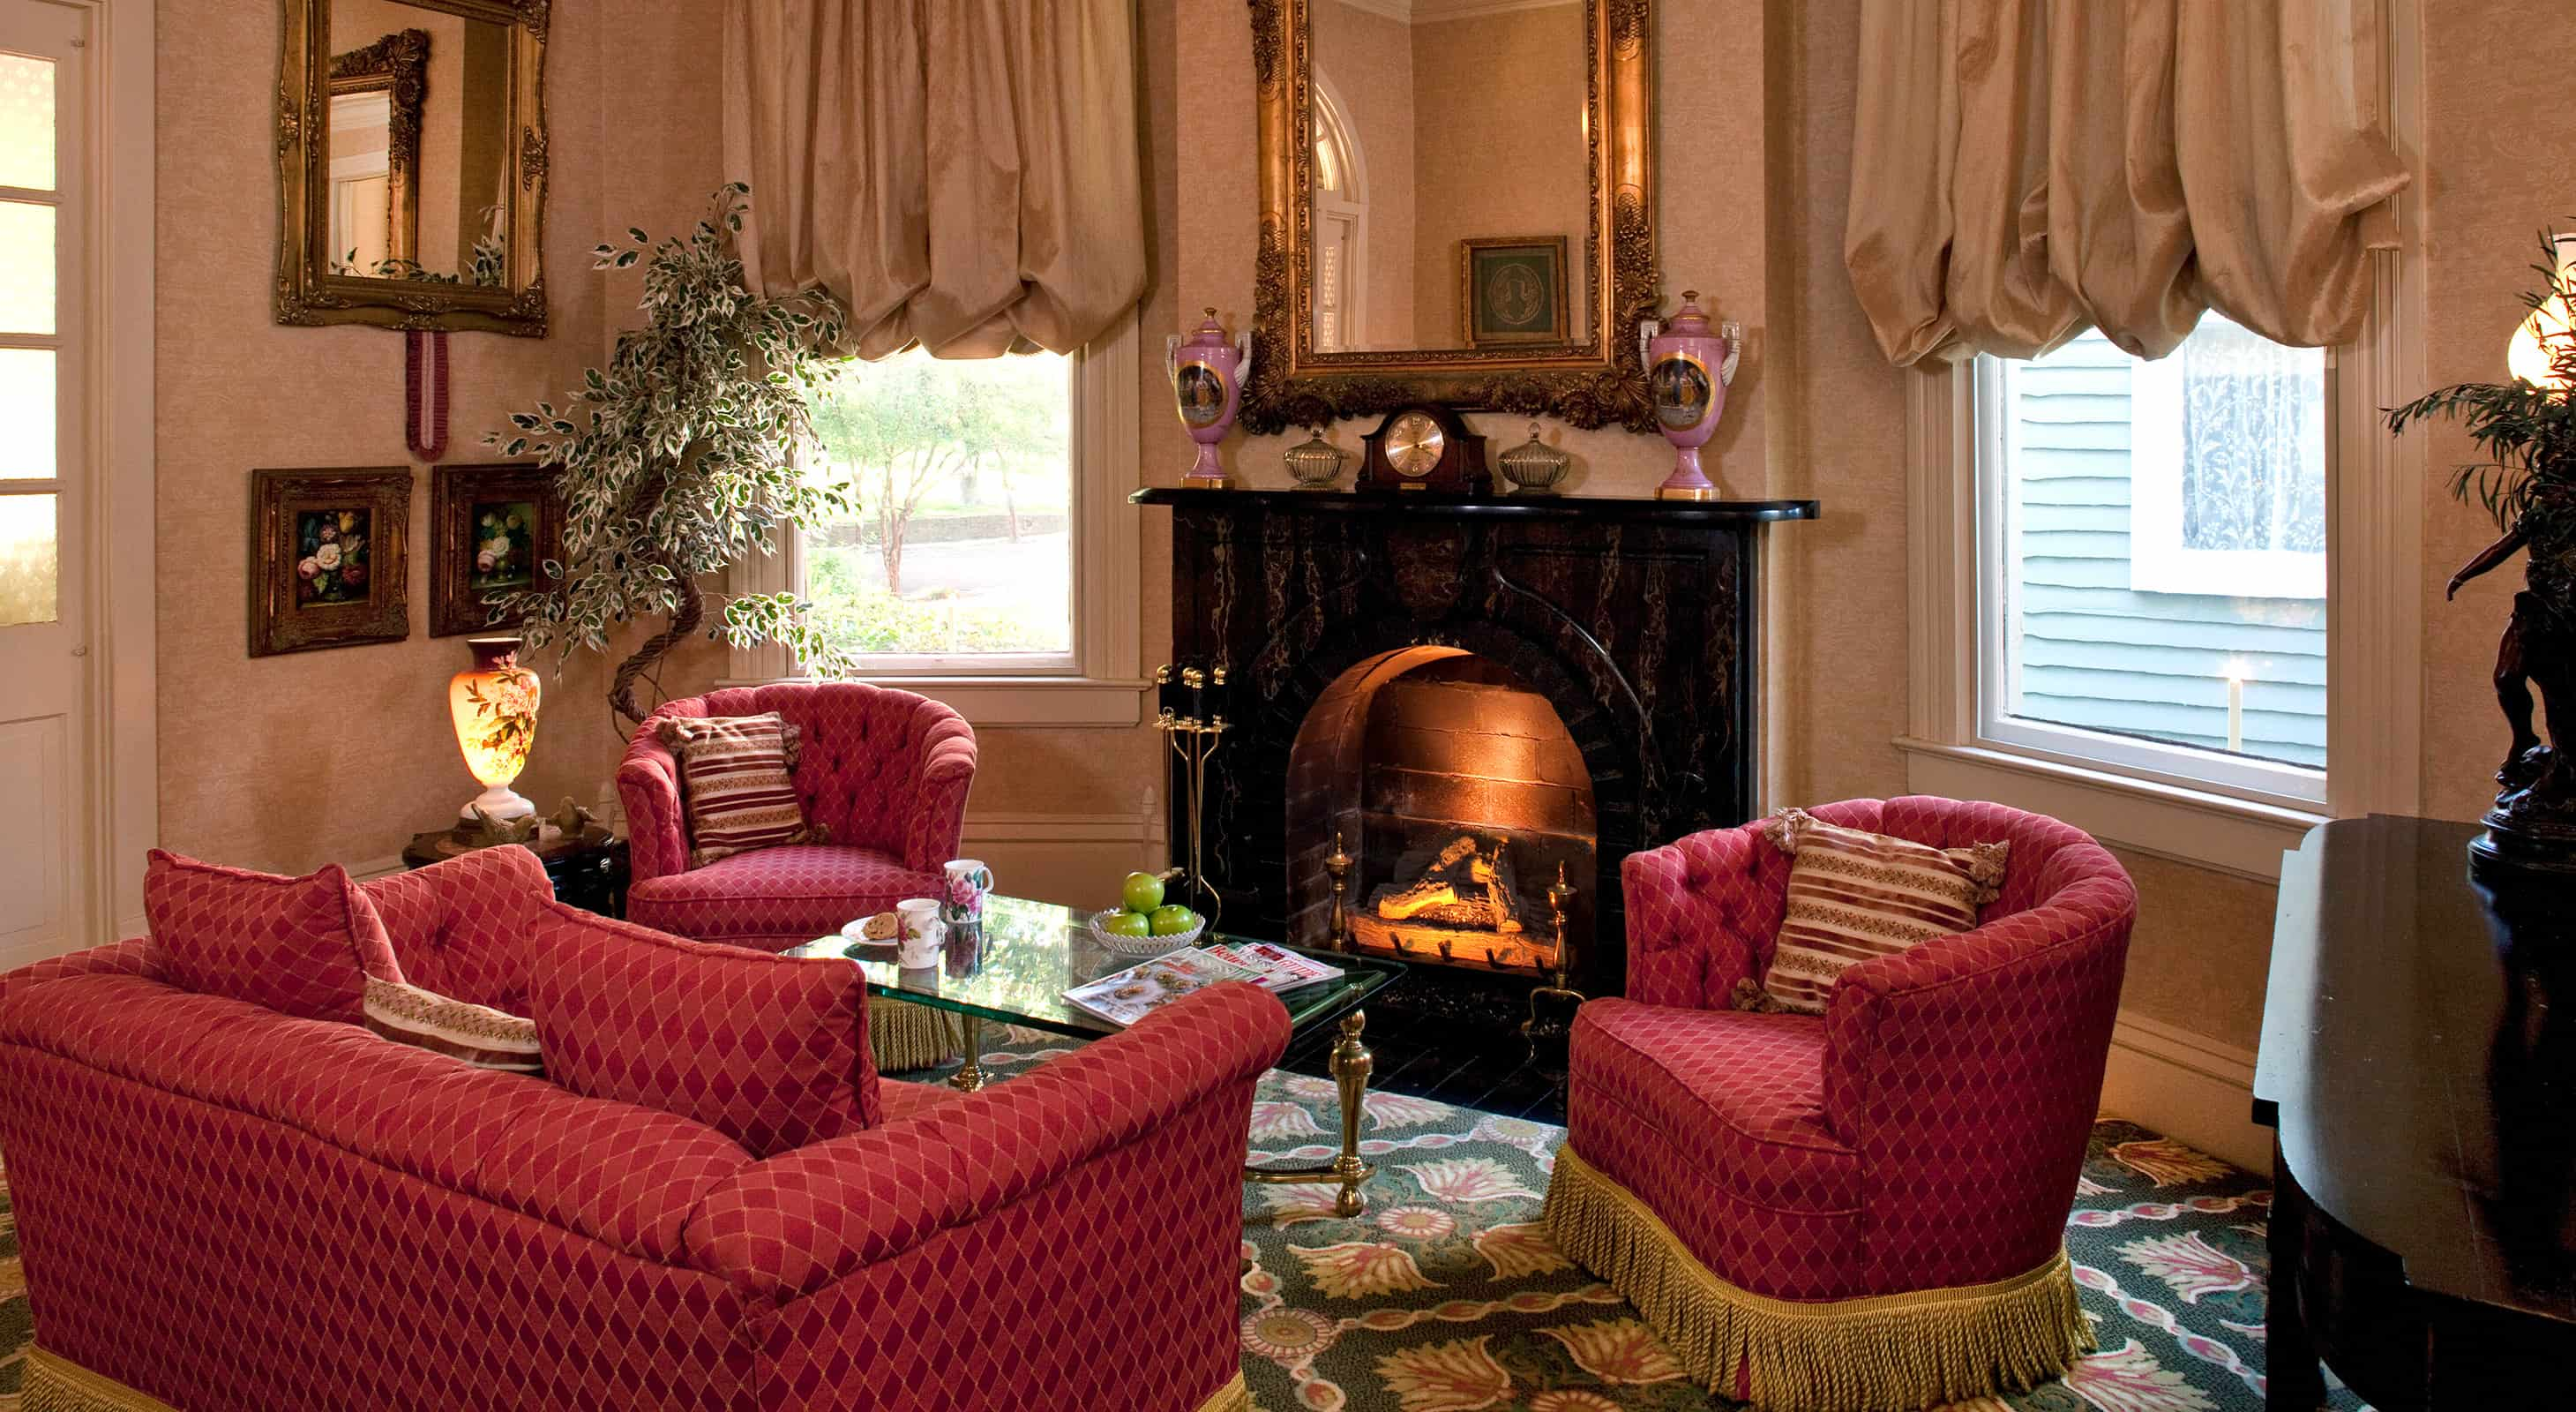 Common area seating room with fireplace